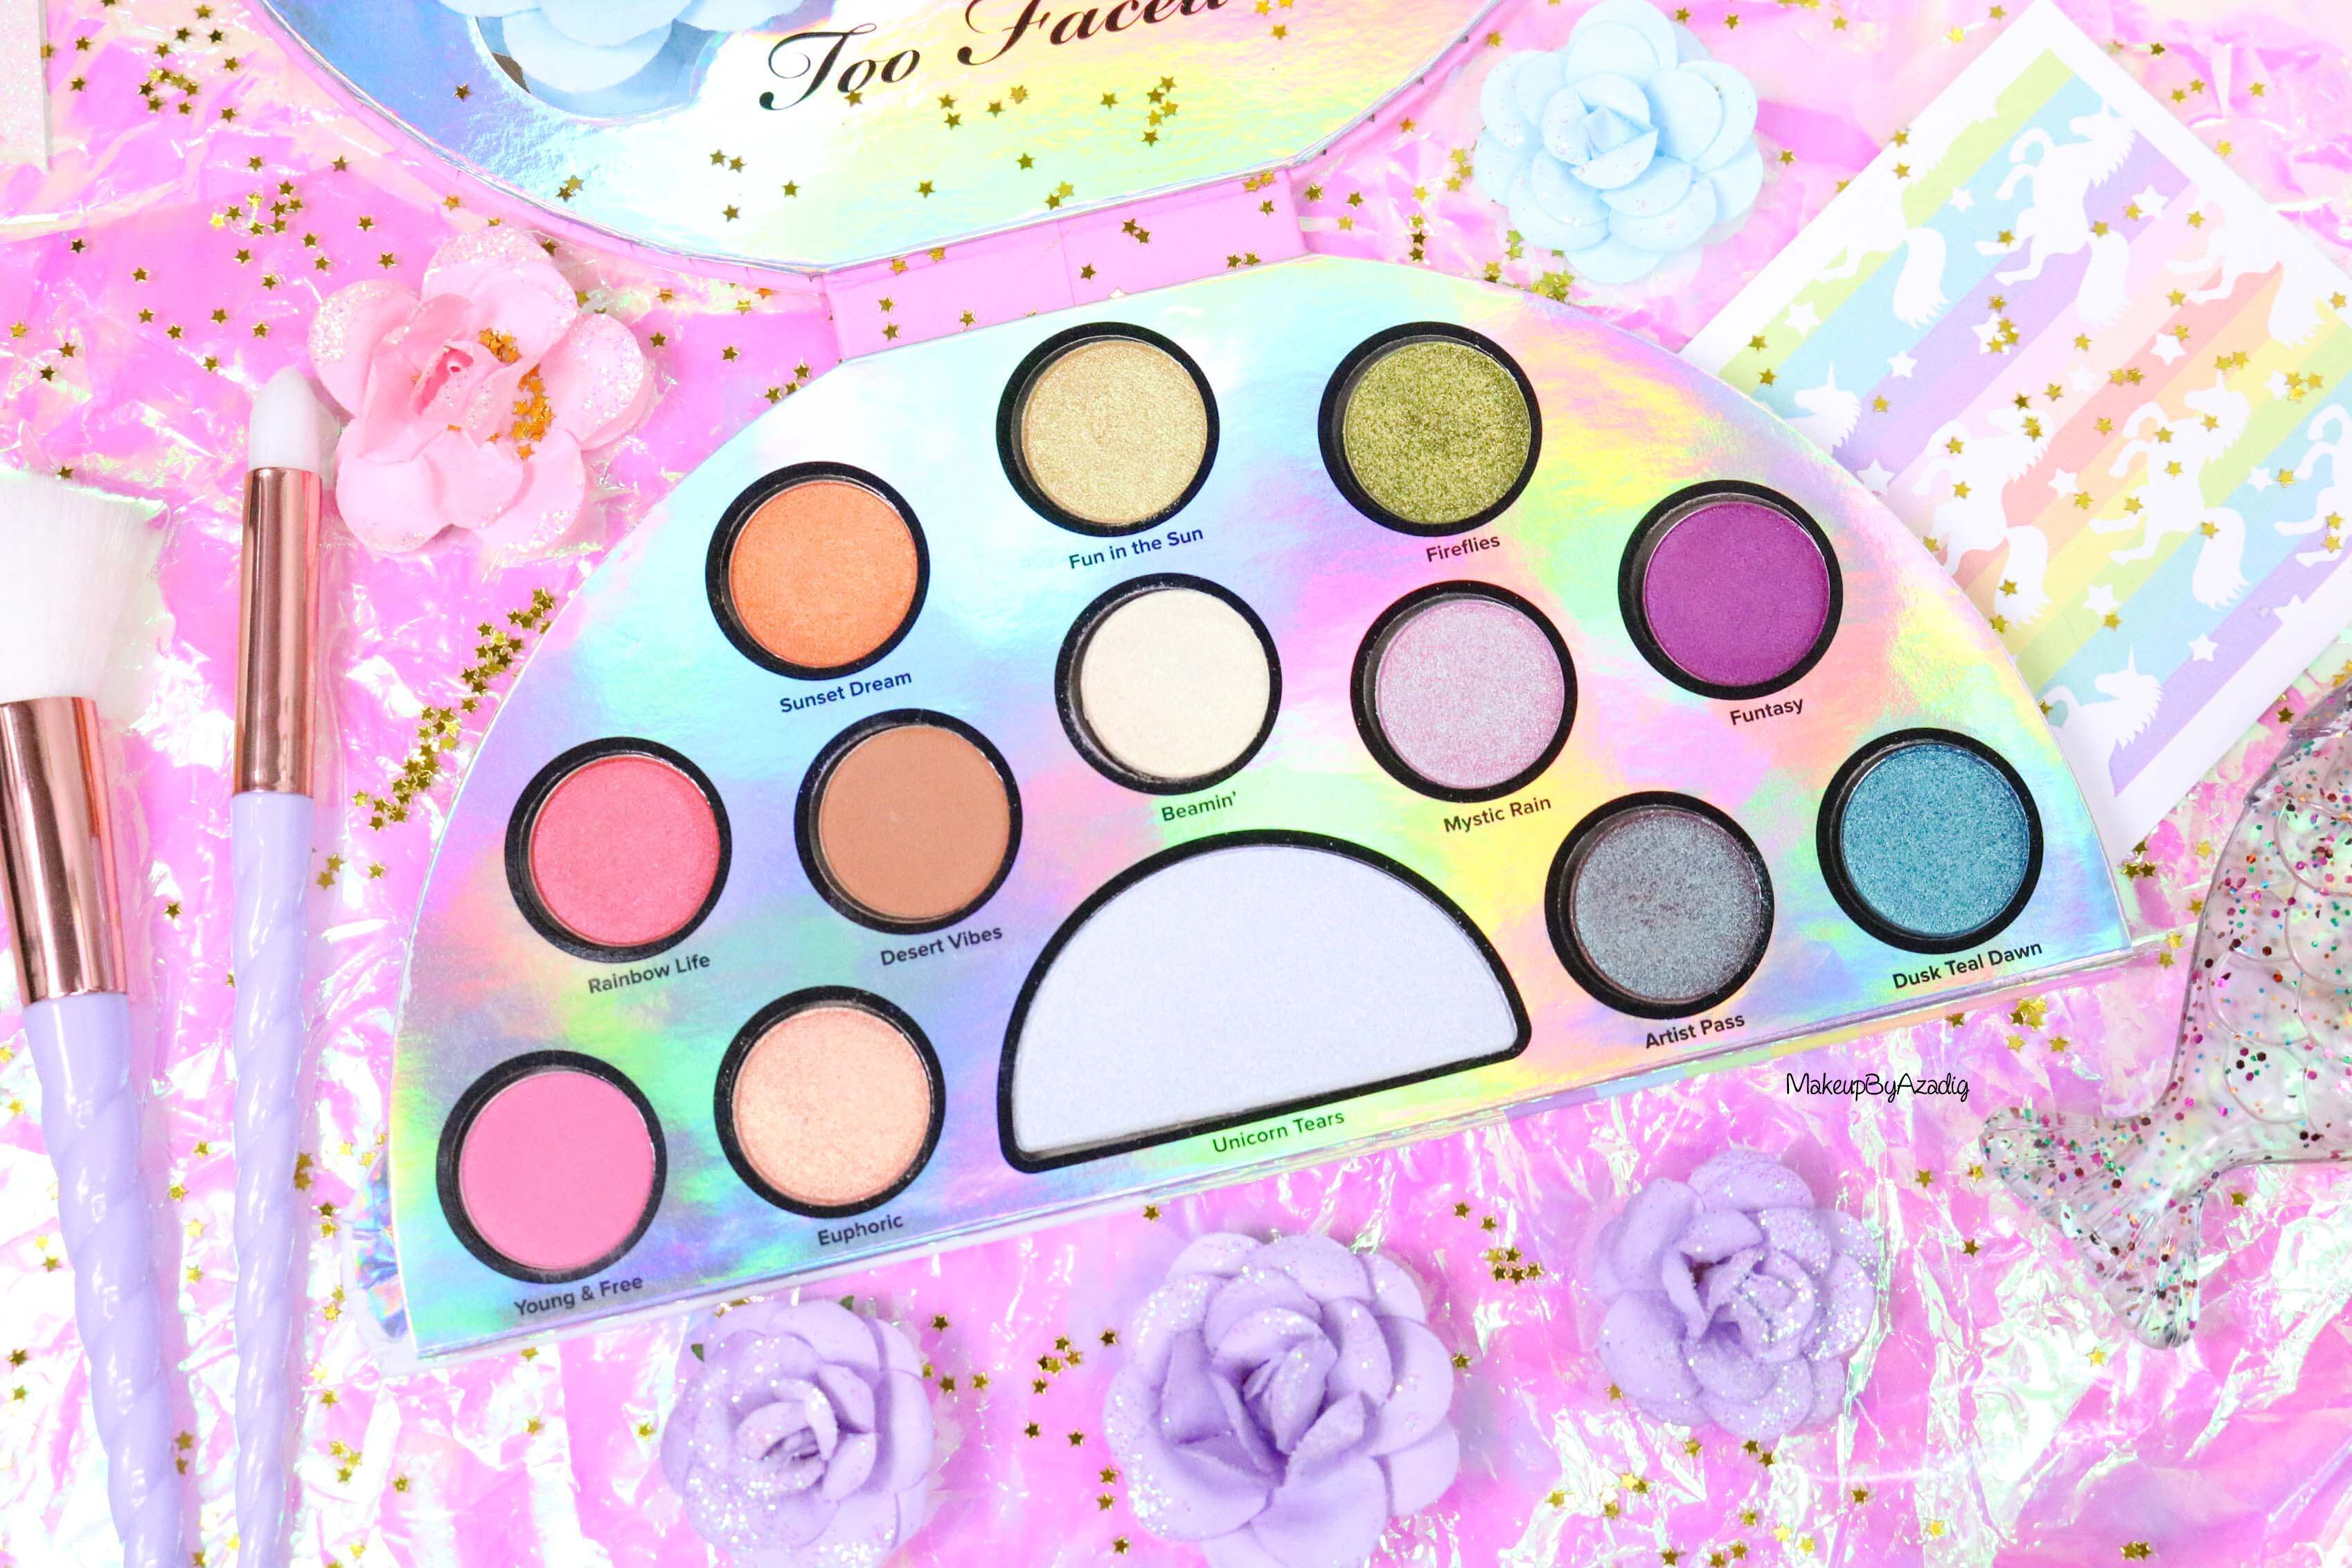 revue-palette-lifes-a-festival-too-faced-france-sephora-avis-prix-revue-makeupbyazadig-collection-licorne-couleurs